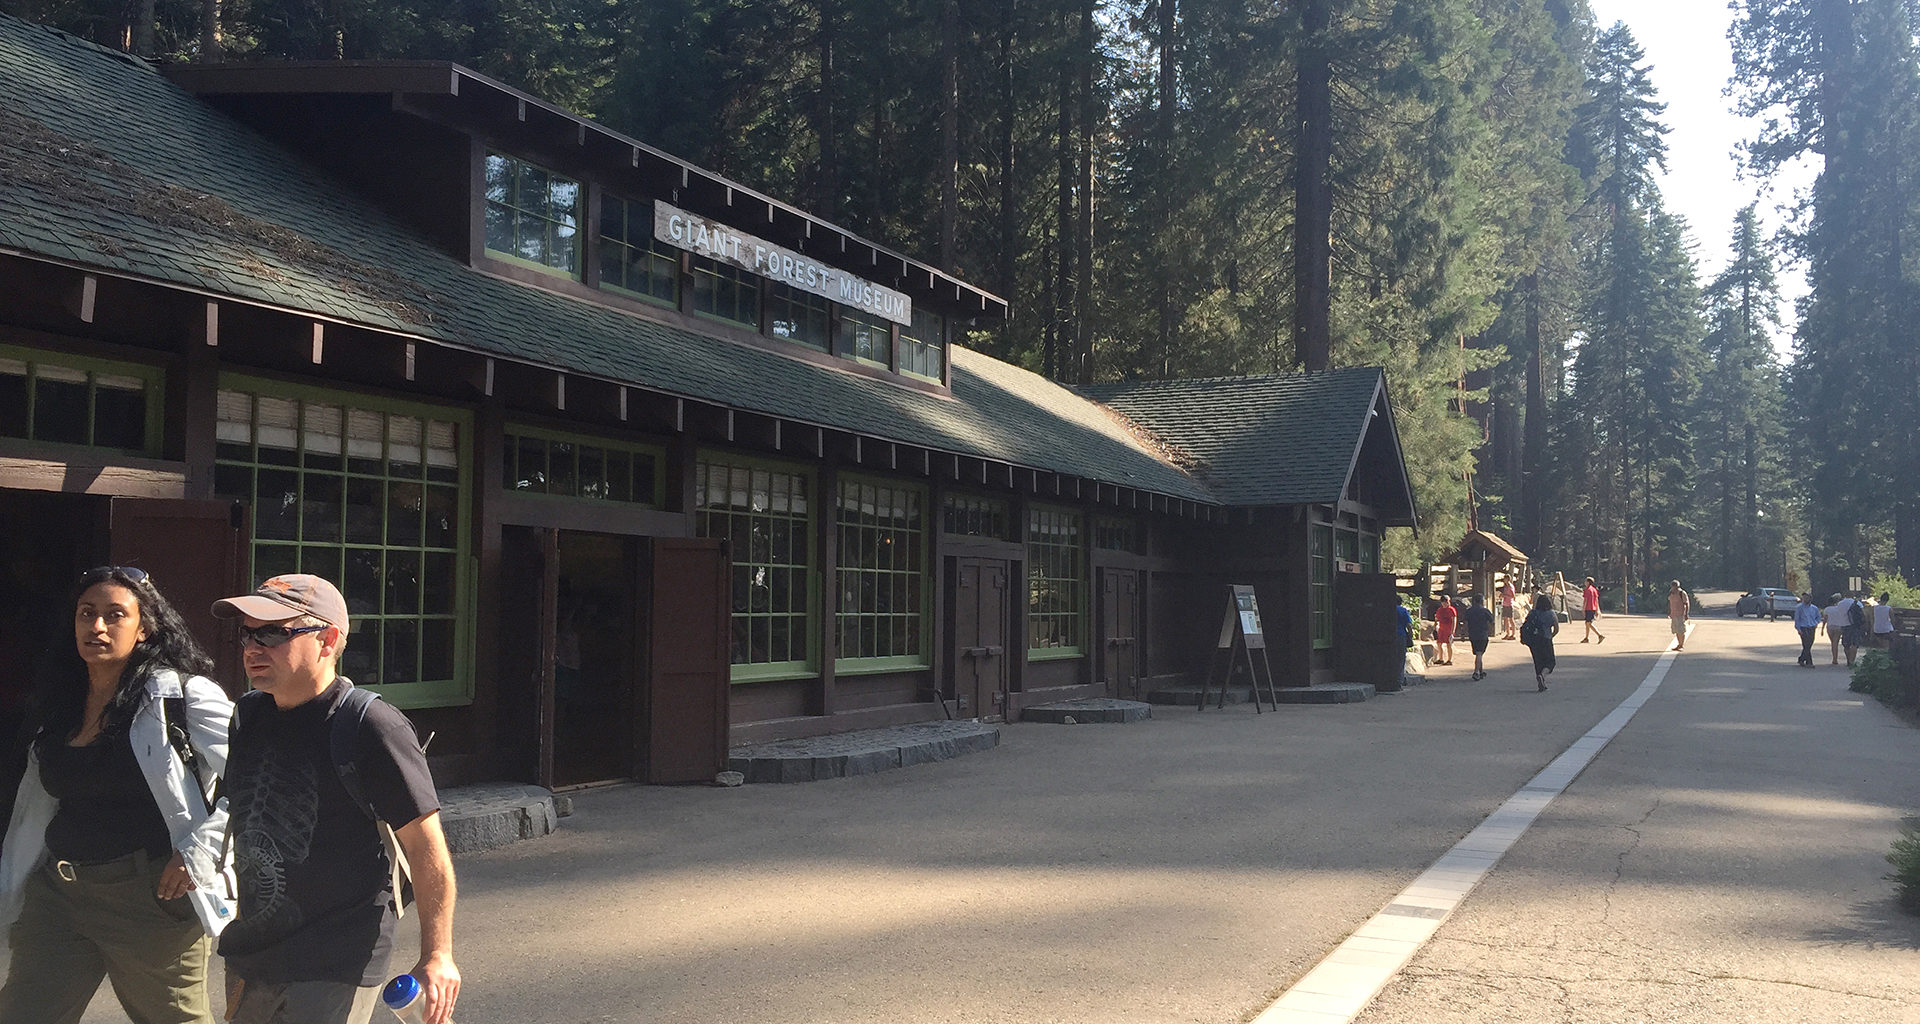 Condition Assessment – Grant Grove Giant Forest Museum